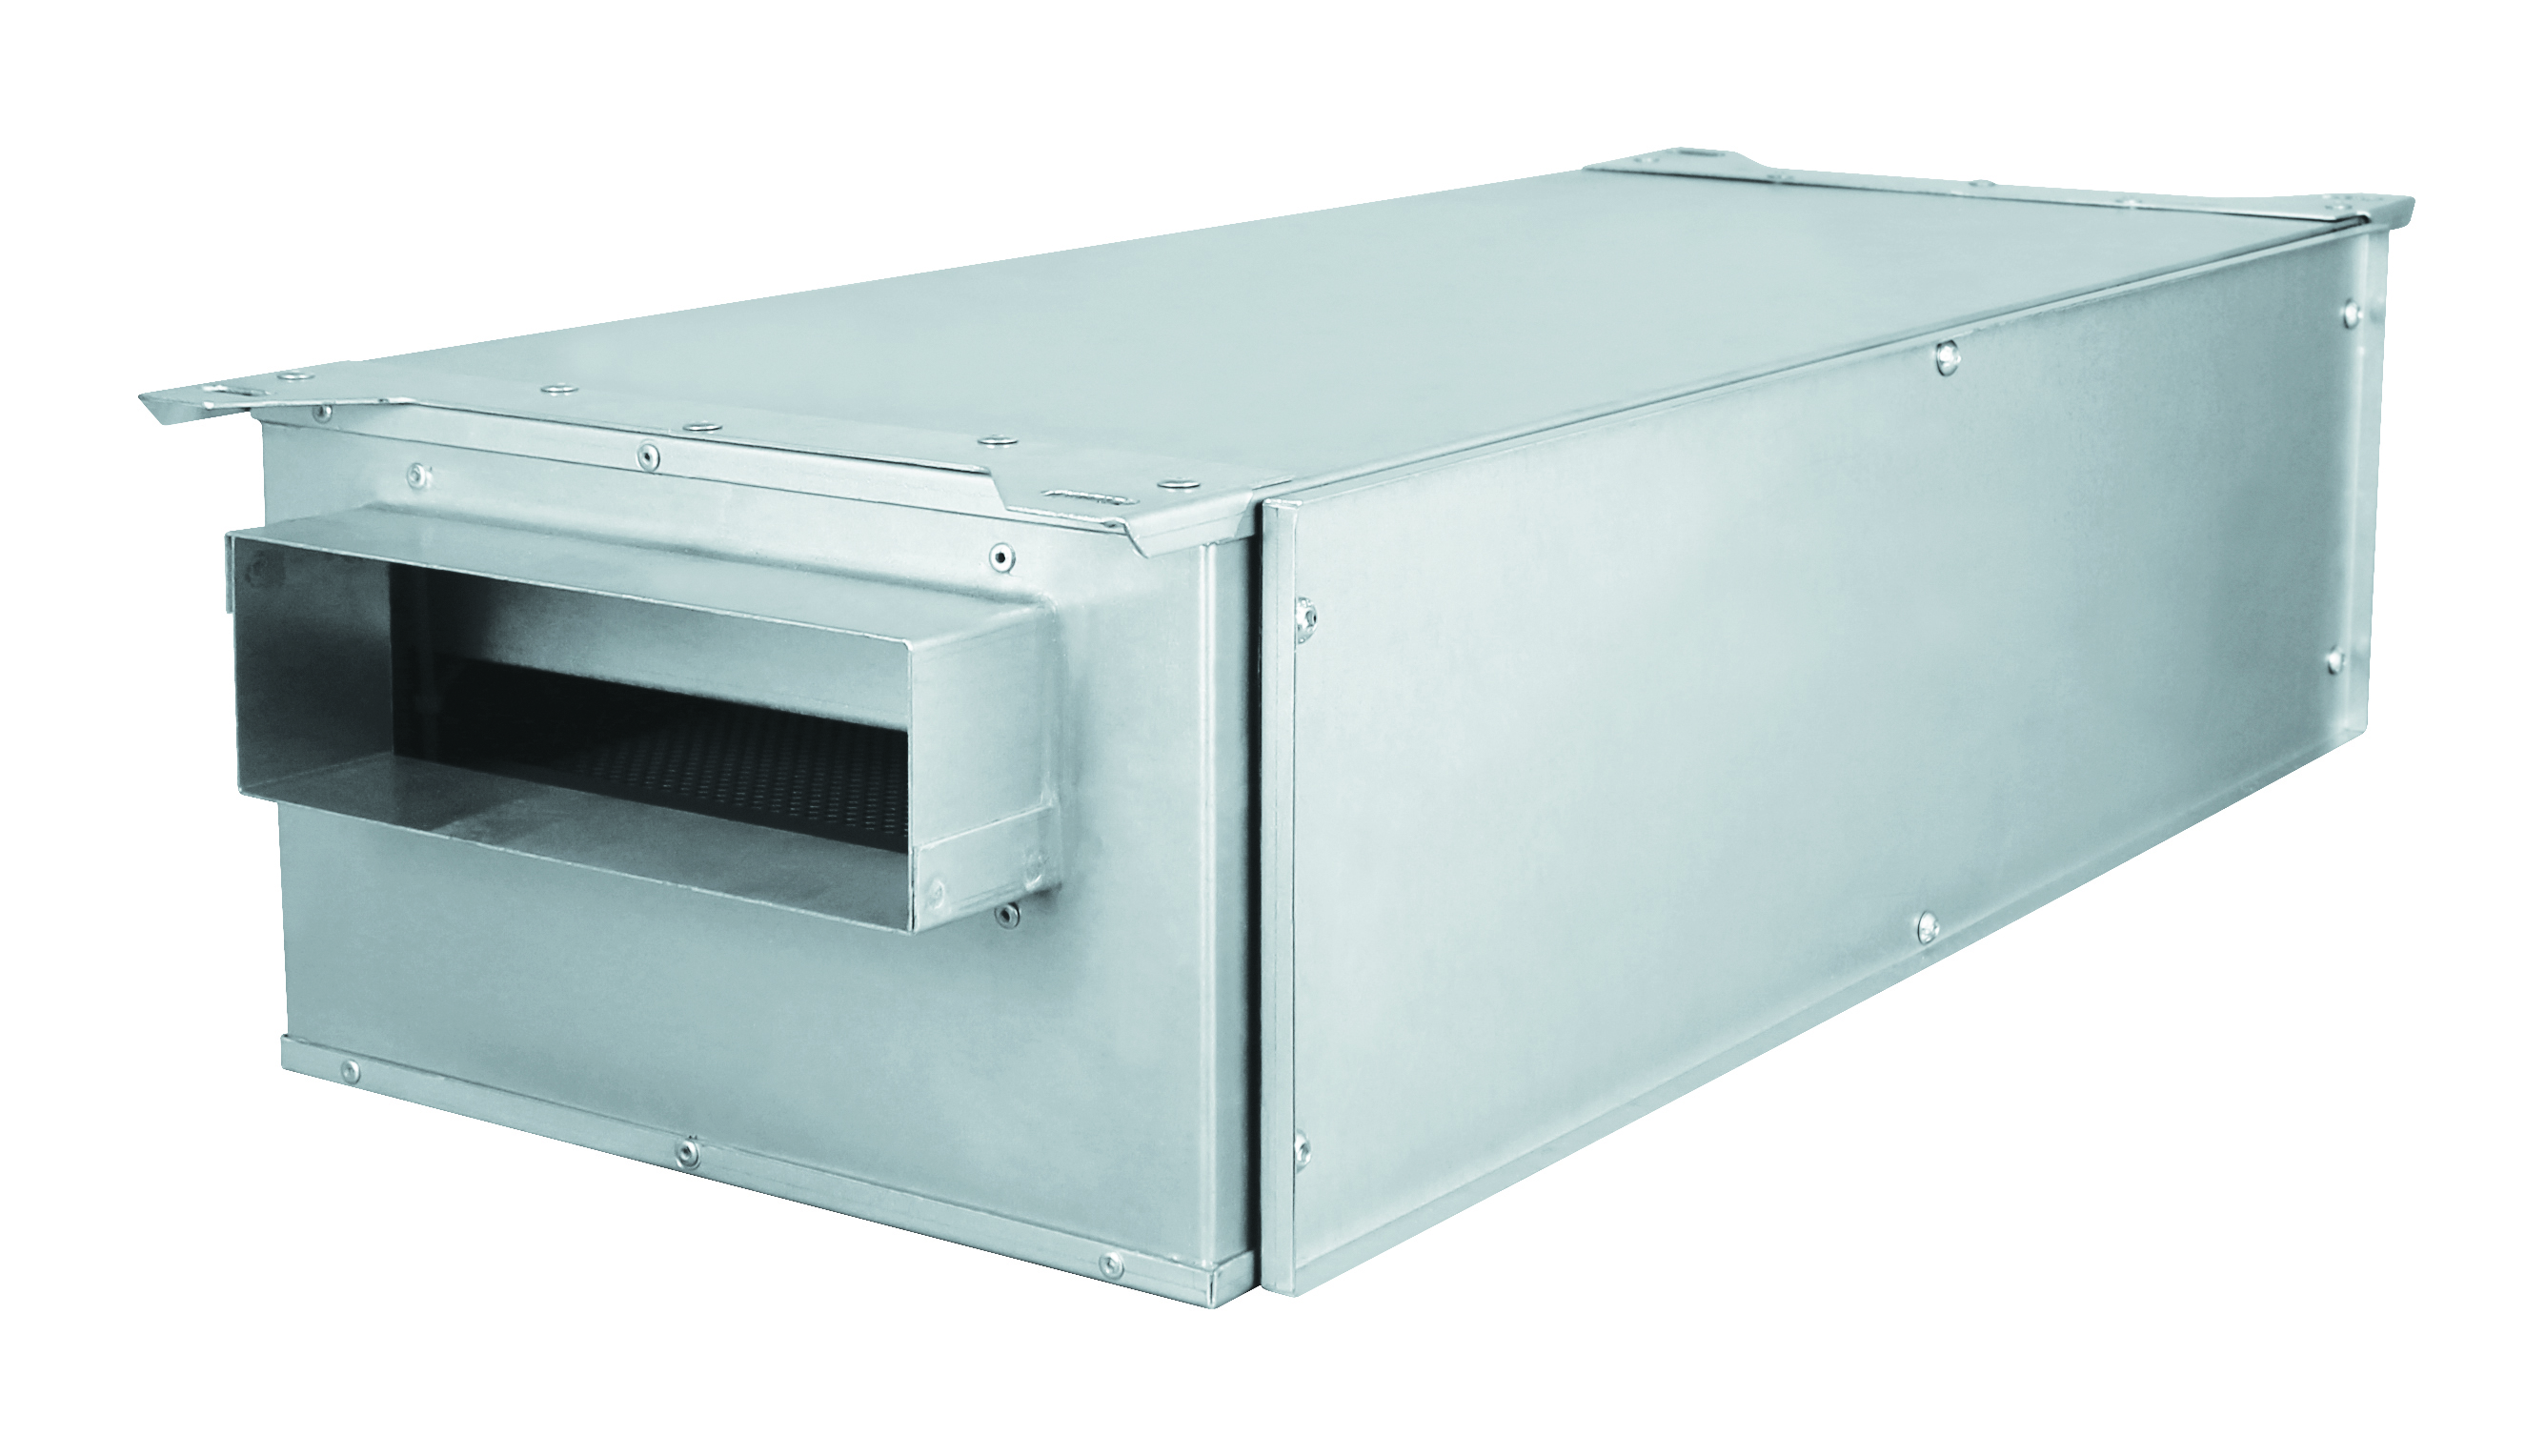 vent-axia_pure_air iaq_system_filter